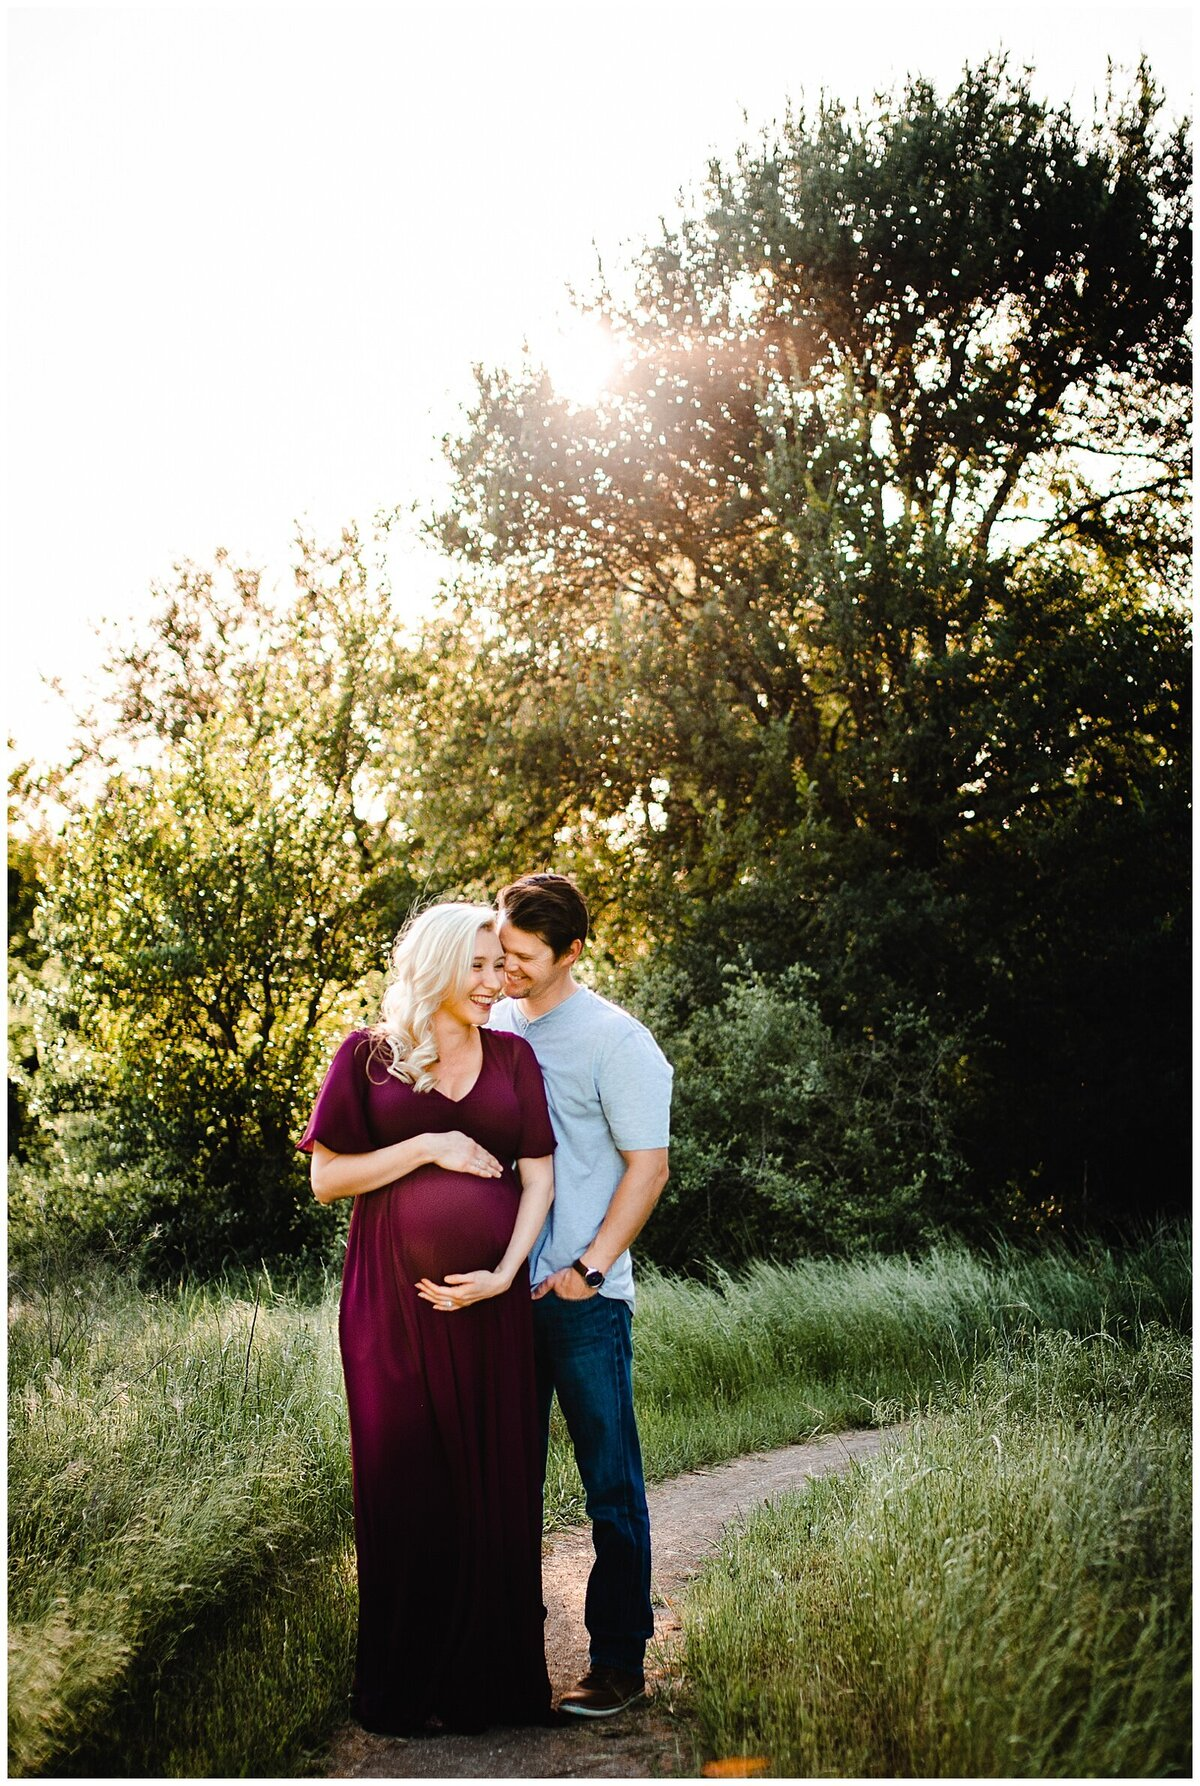 Maternity excitement photography